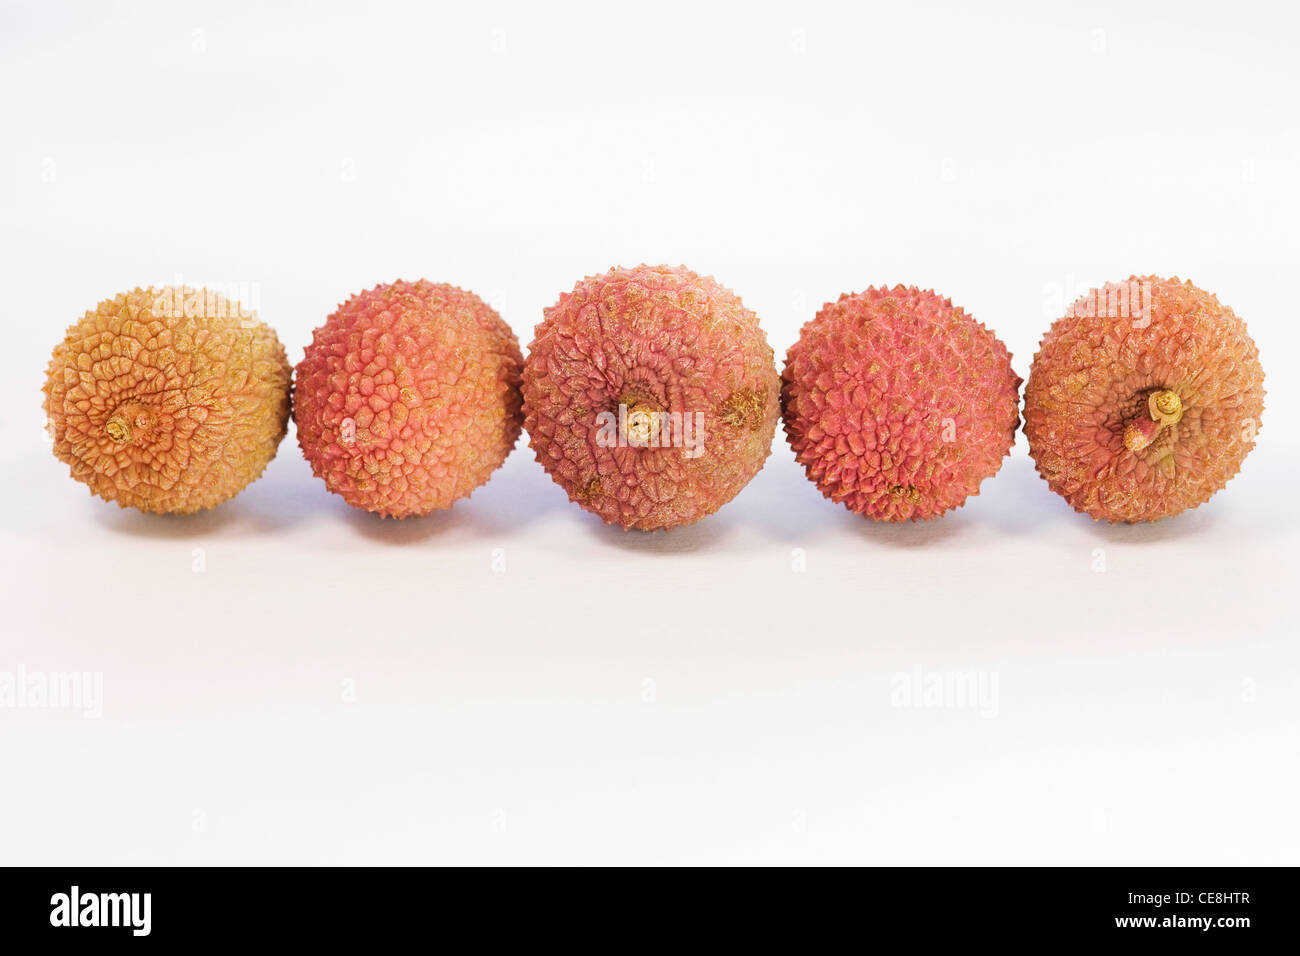 Litchi chinenesis. Lychee fruit on a white background. - Stock Image